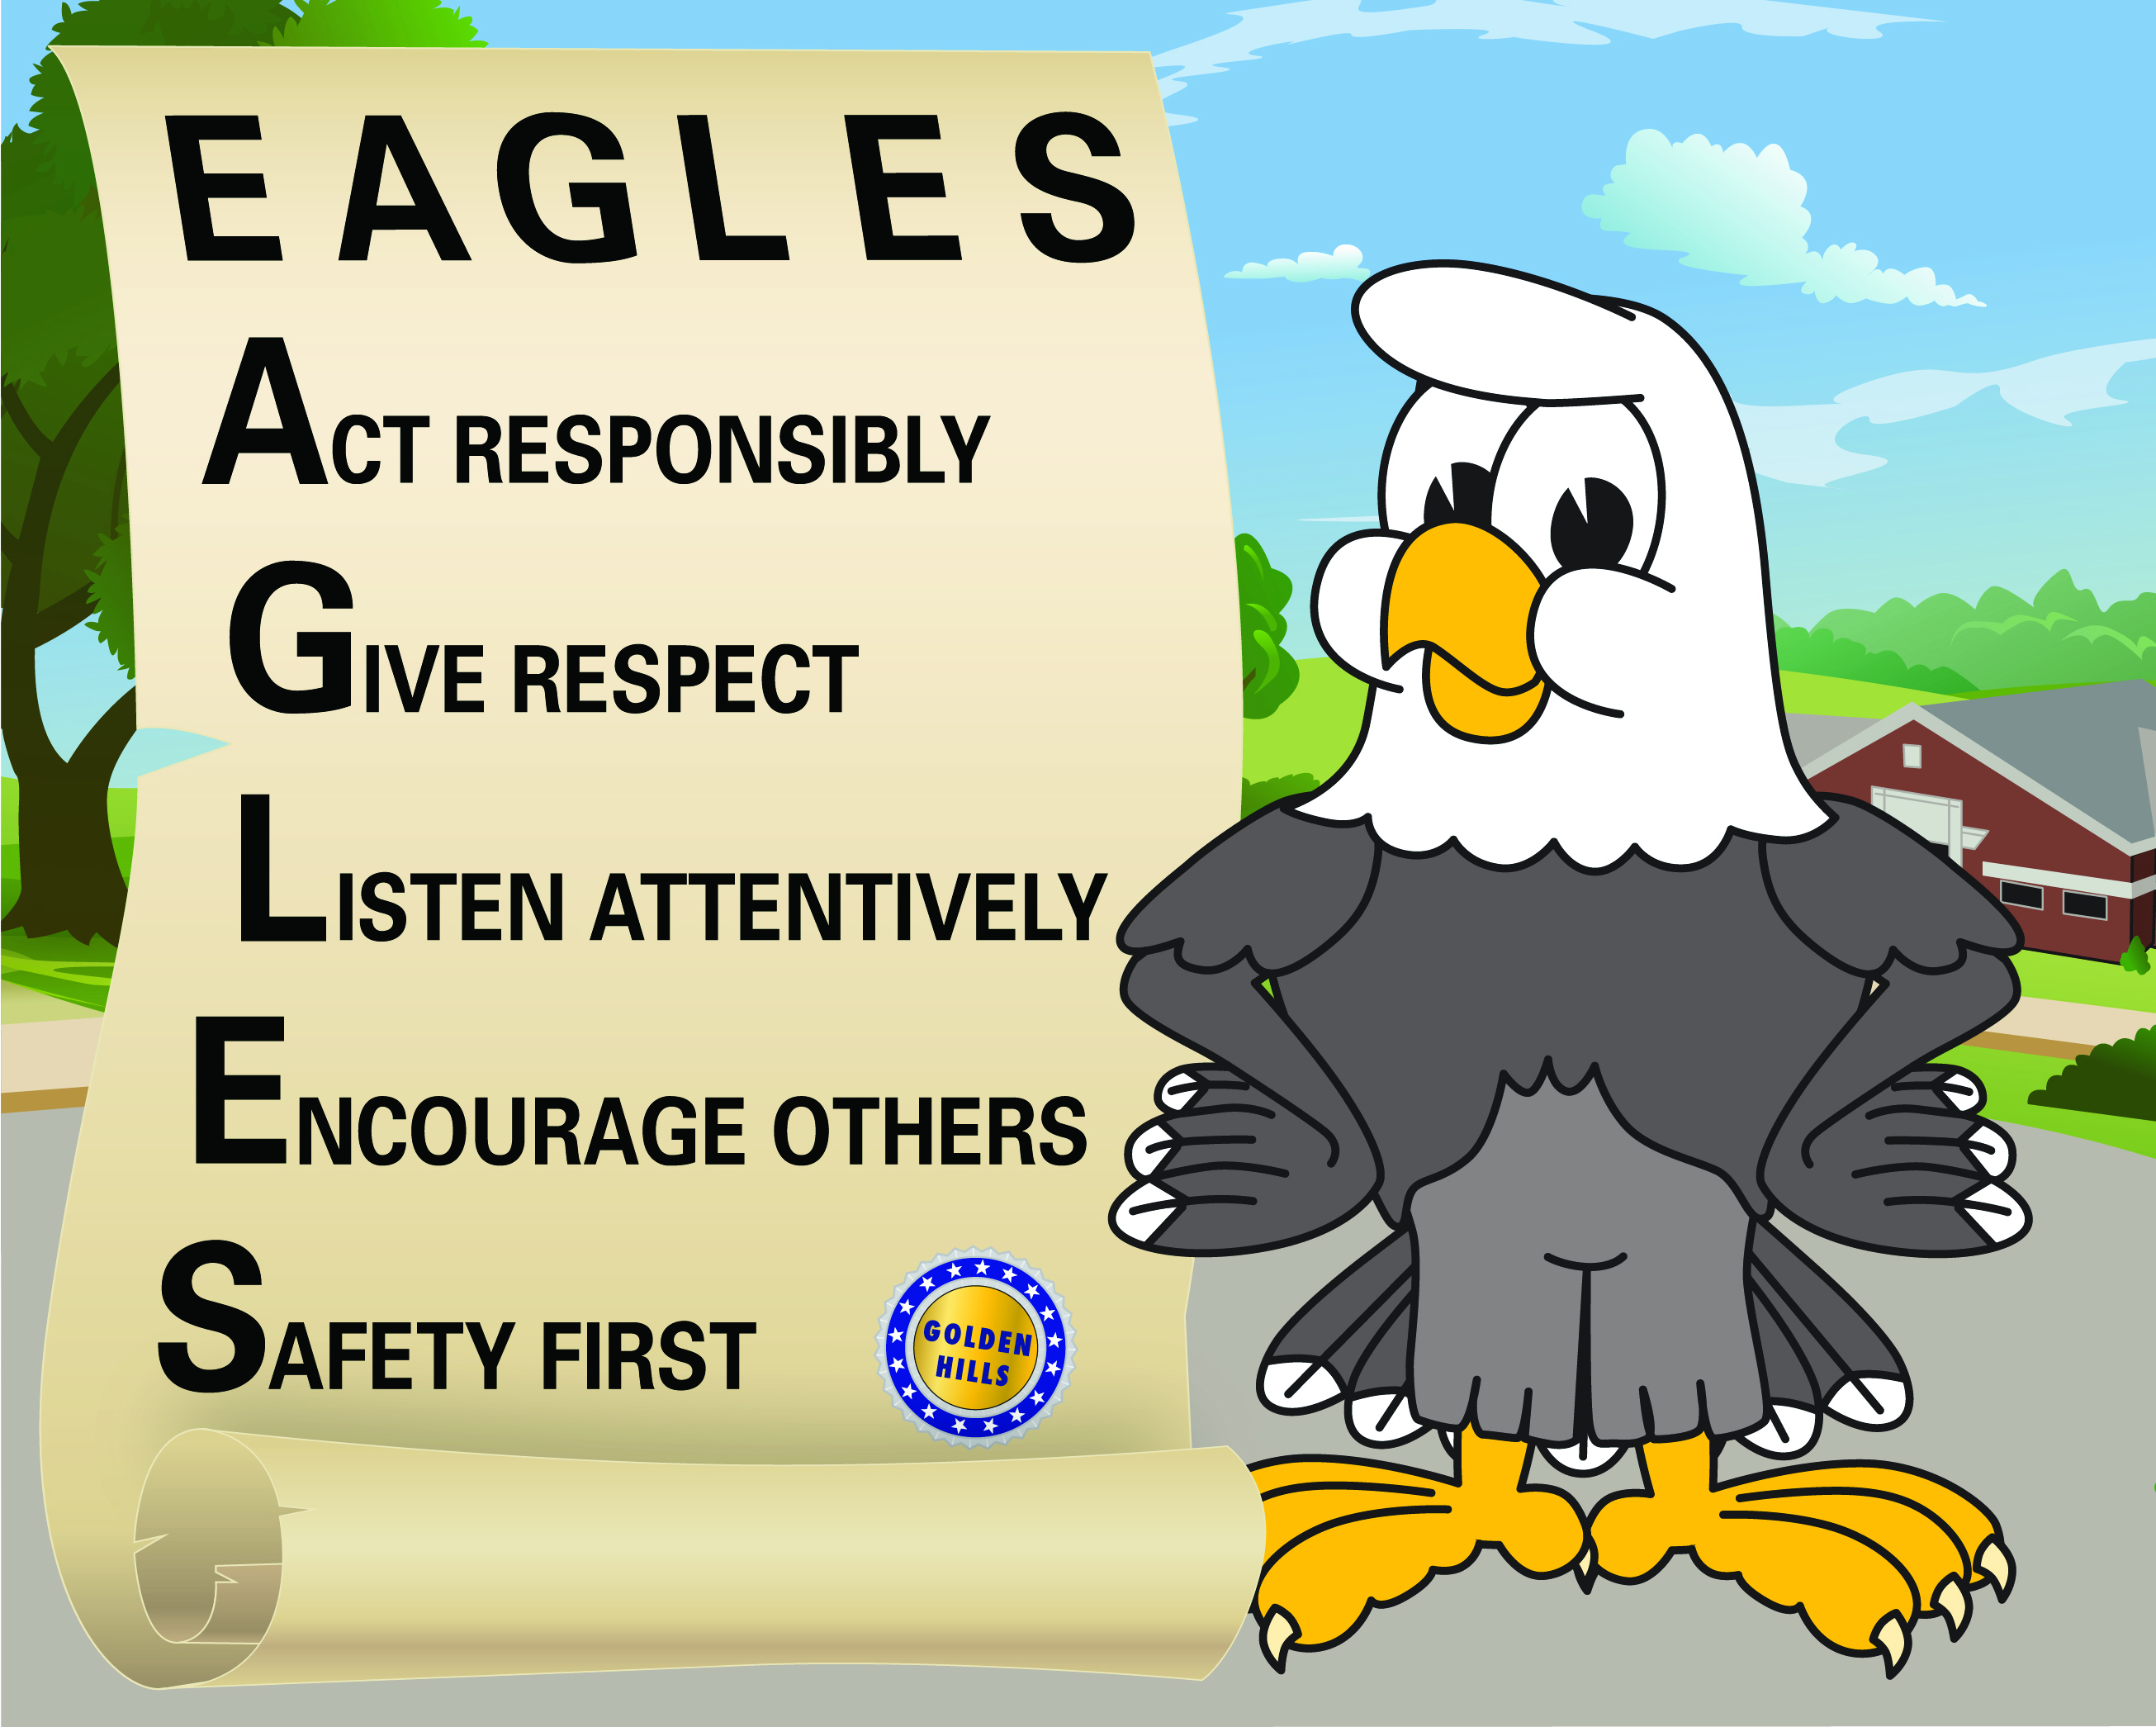 Eagle Poster used by Macmillan Higher Education